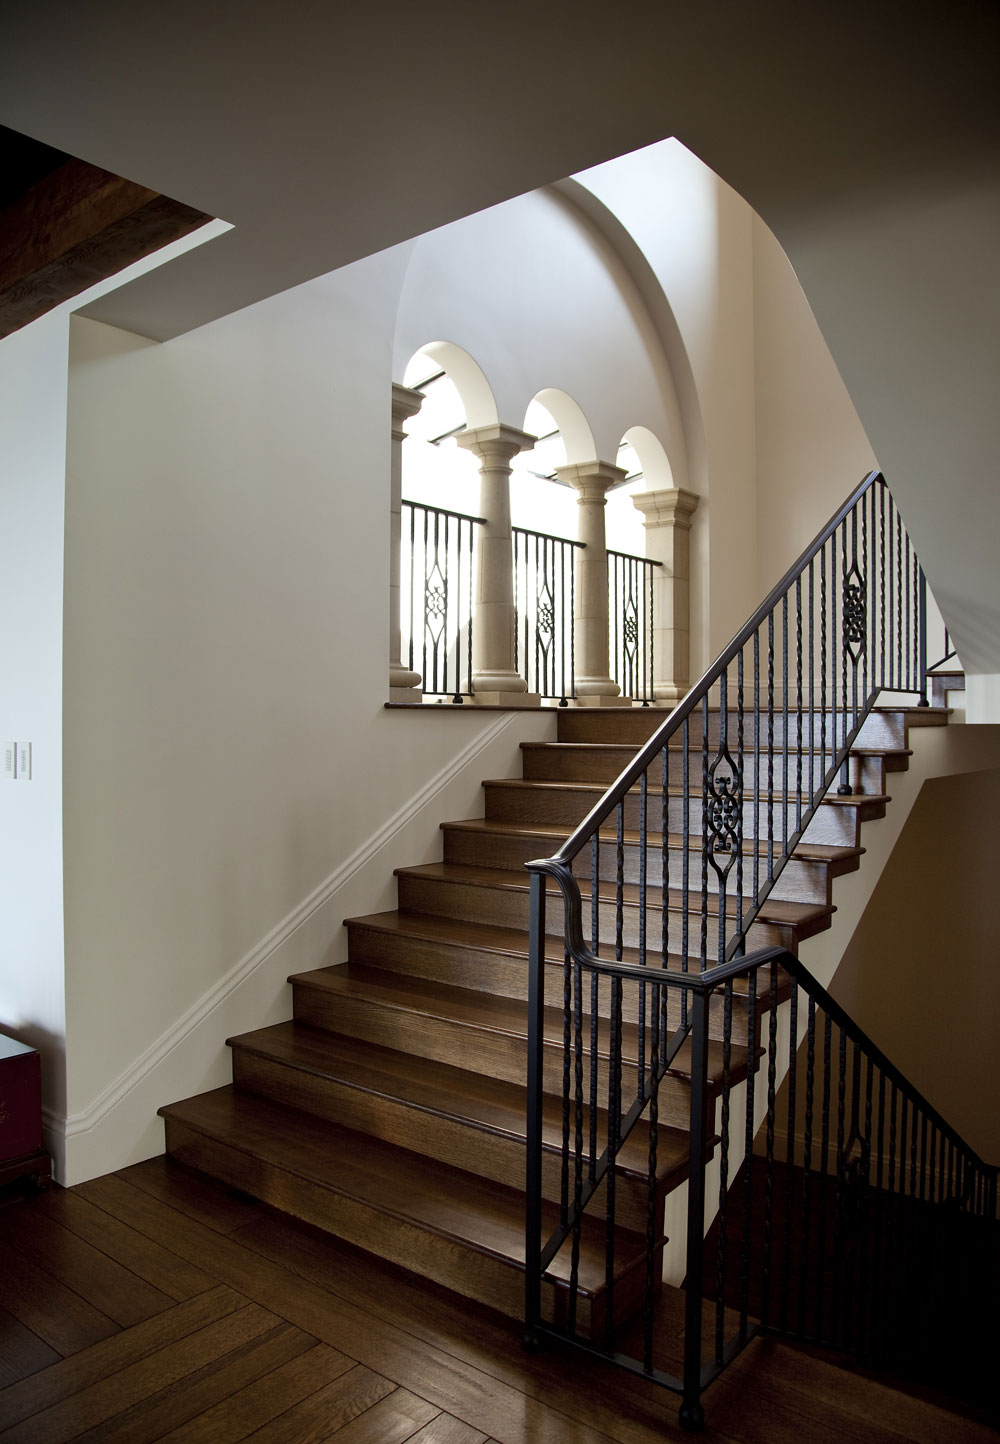 Modern-Spanish-Wood-Floor-Staircase-Wrought-Iron-Railing-Arched-Windows-Corbin-Reeves.jpg